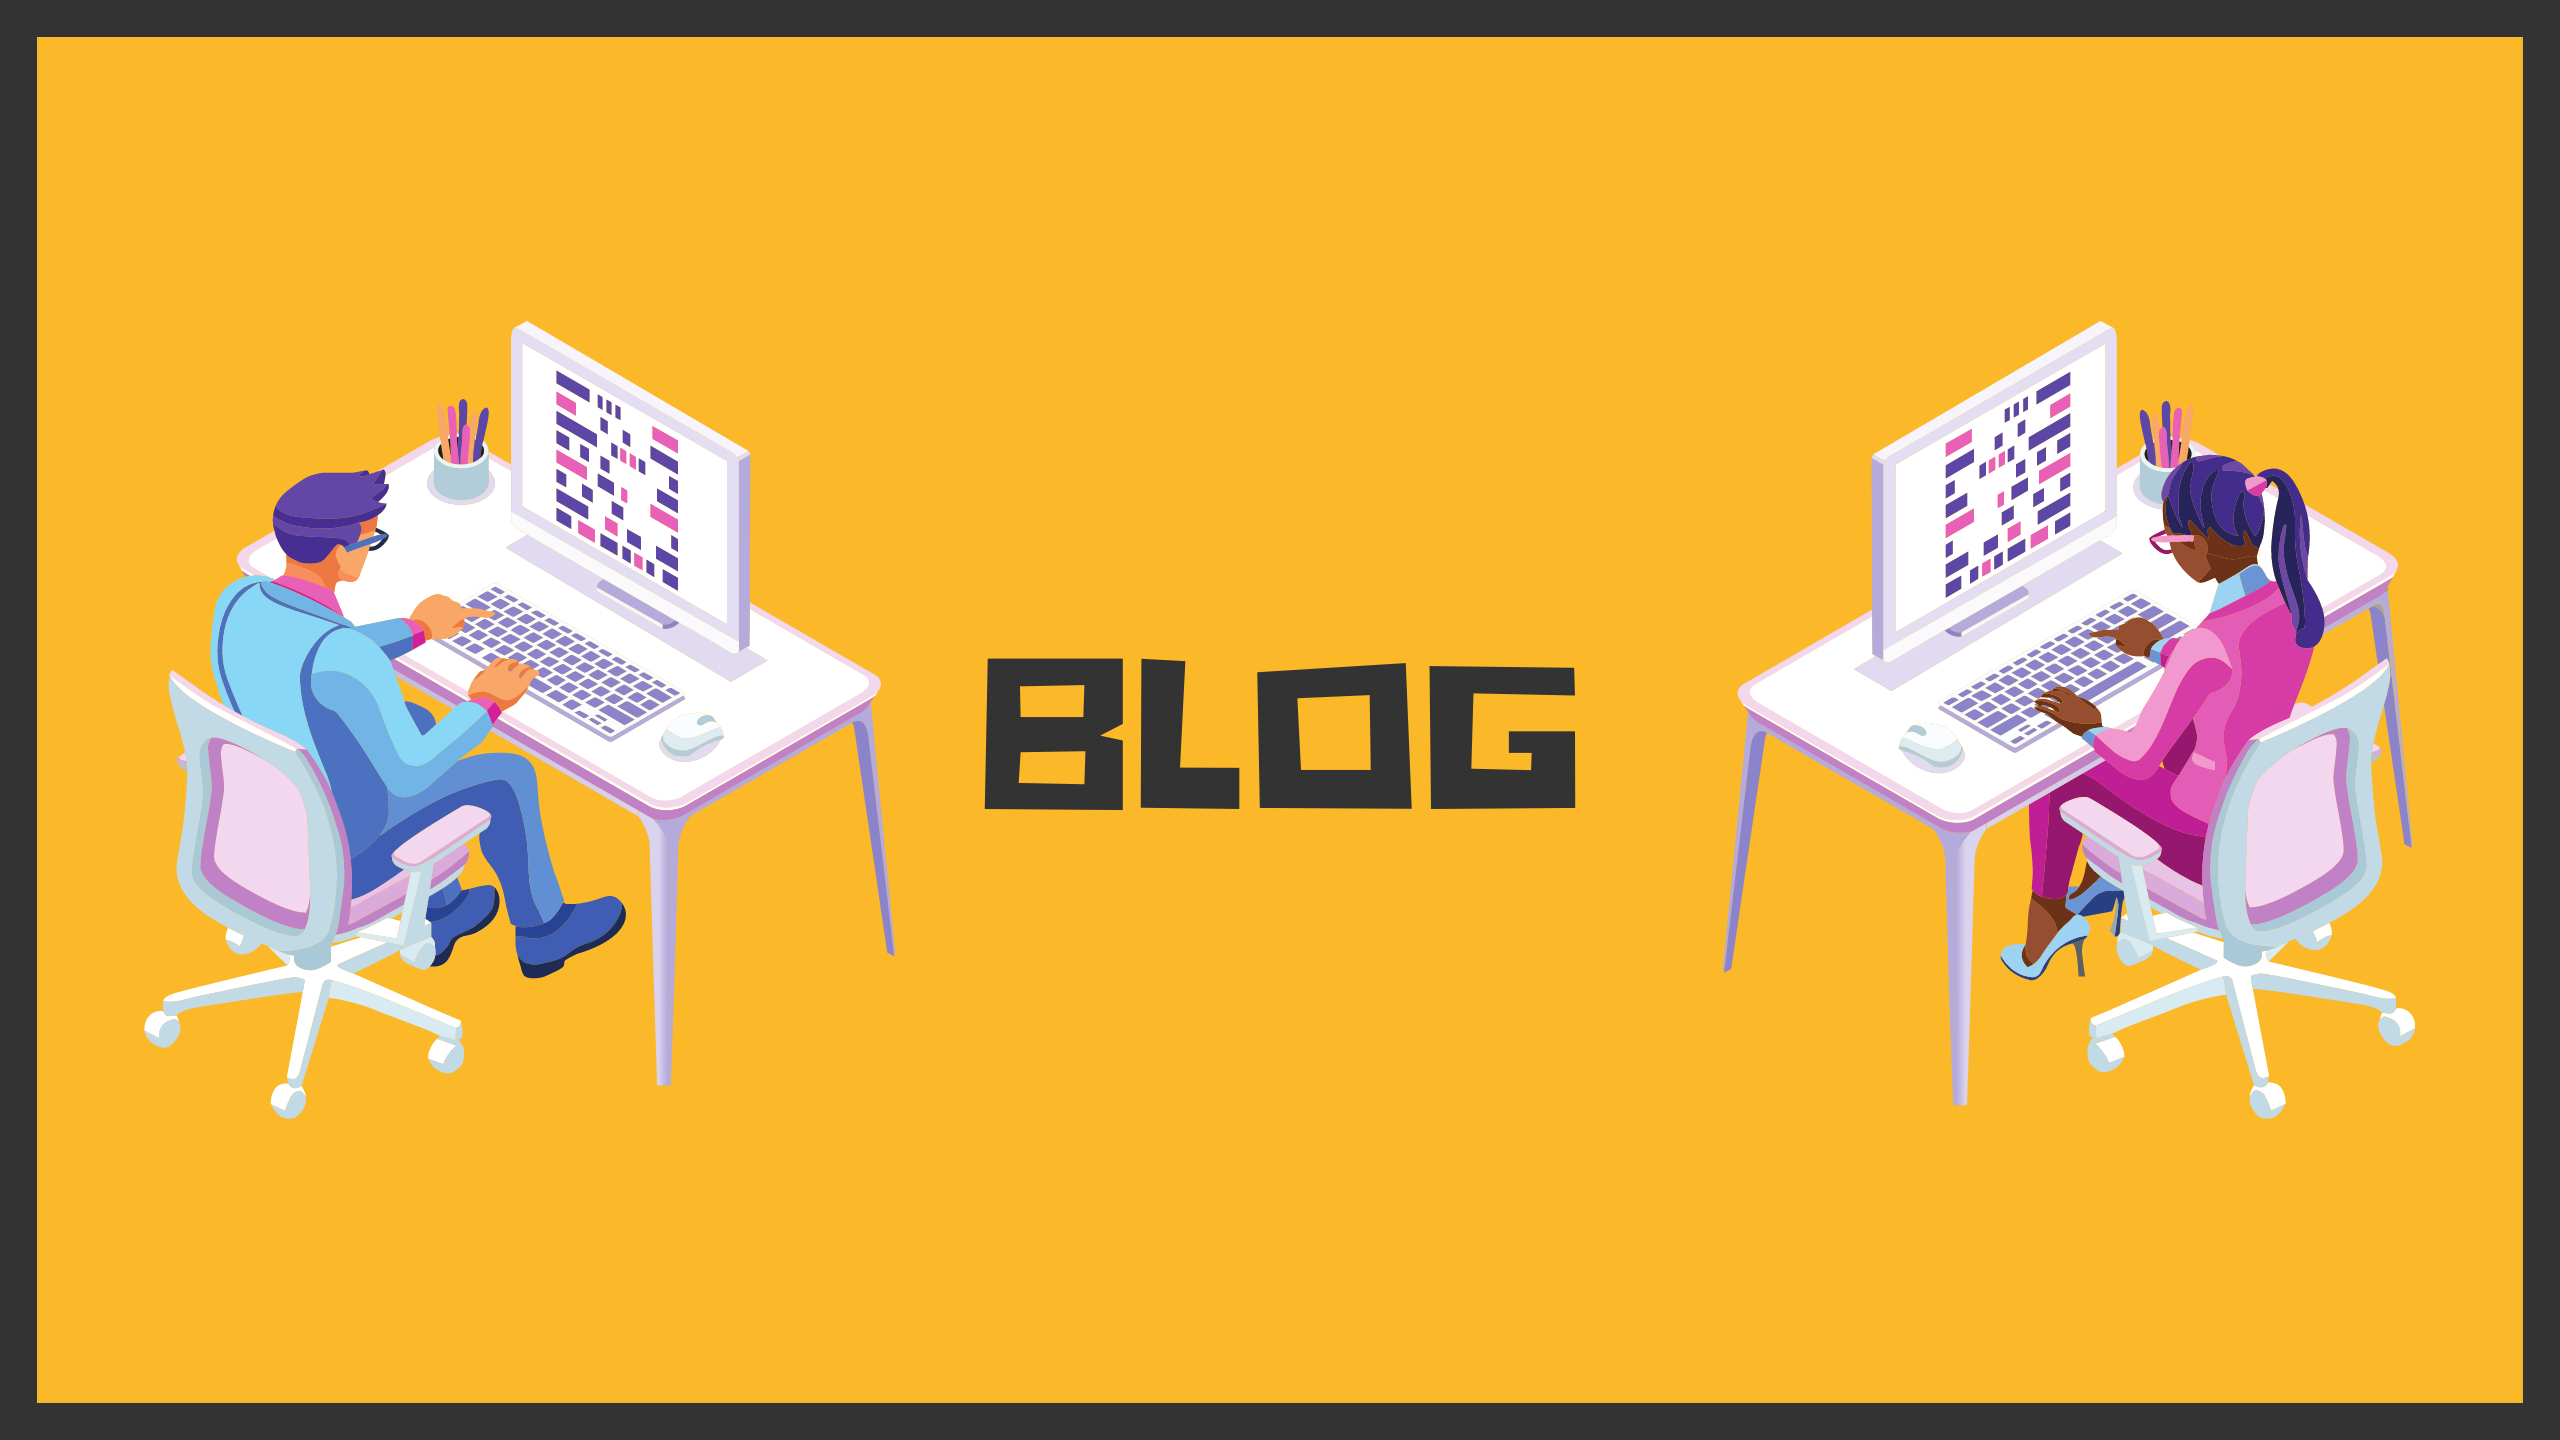 """Cover image for blog section. Two people on the computers are on the sides and in the middle, it says """"Blog"""""""